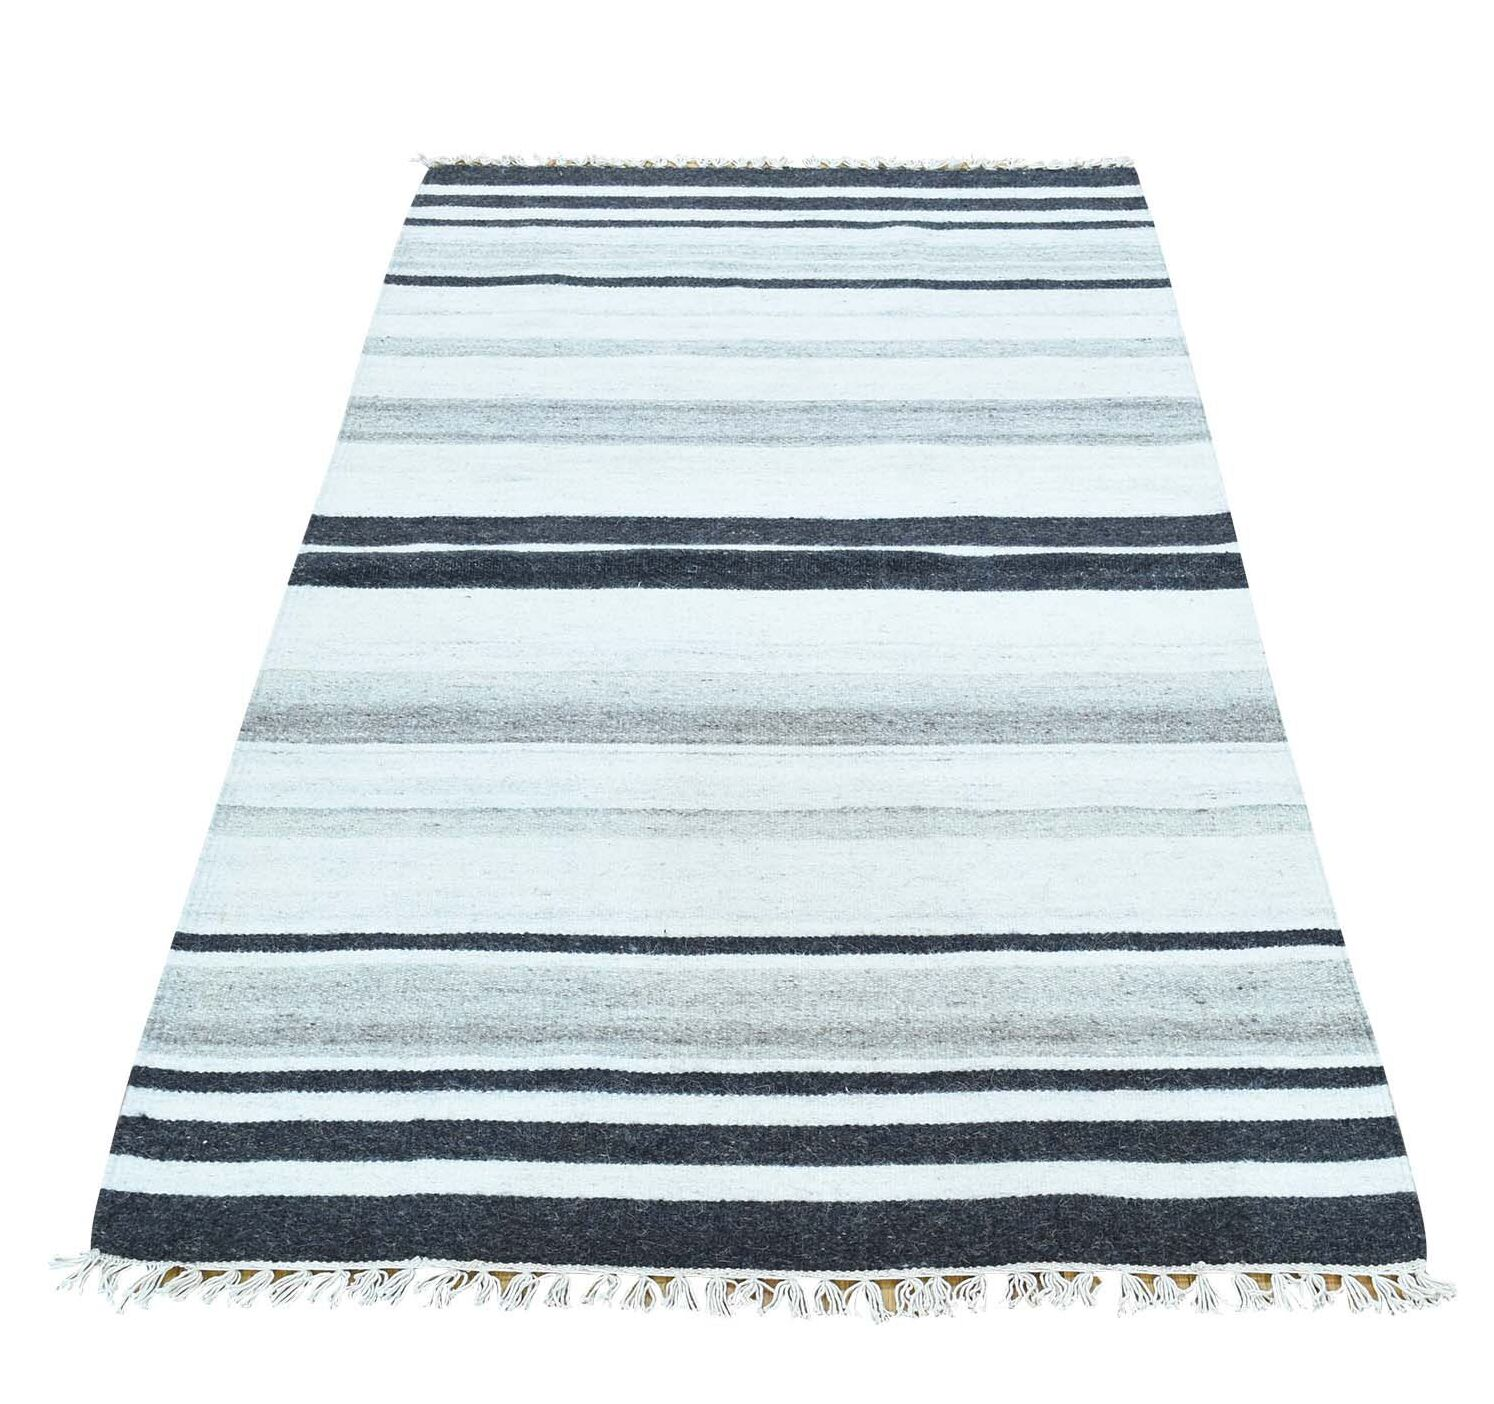 Flat Weave Striped Reversible Kilim Oriental Hand-Knotted Charcoal Black/Ivory Area Rug